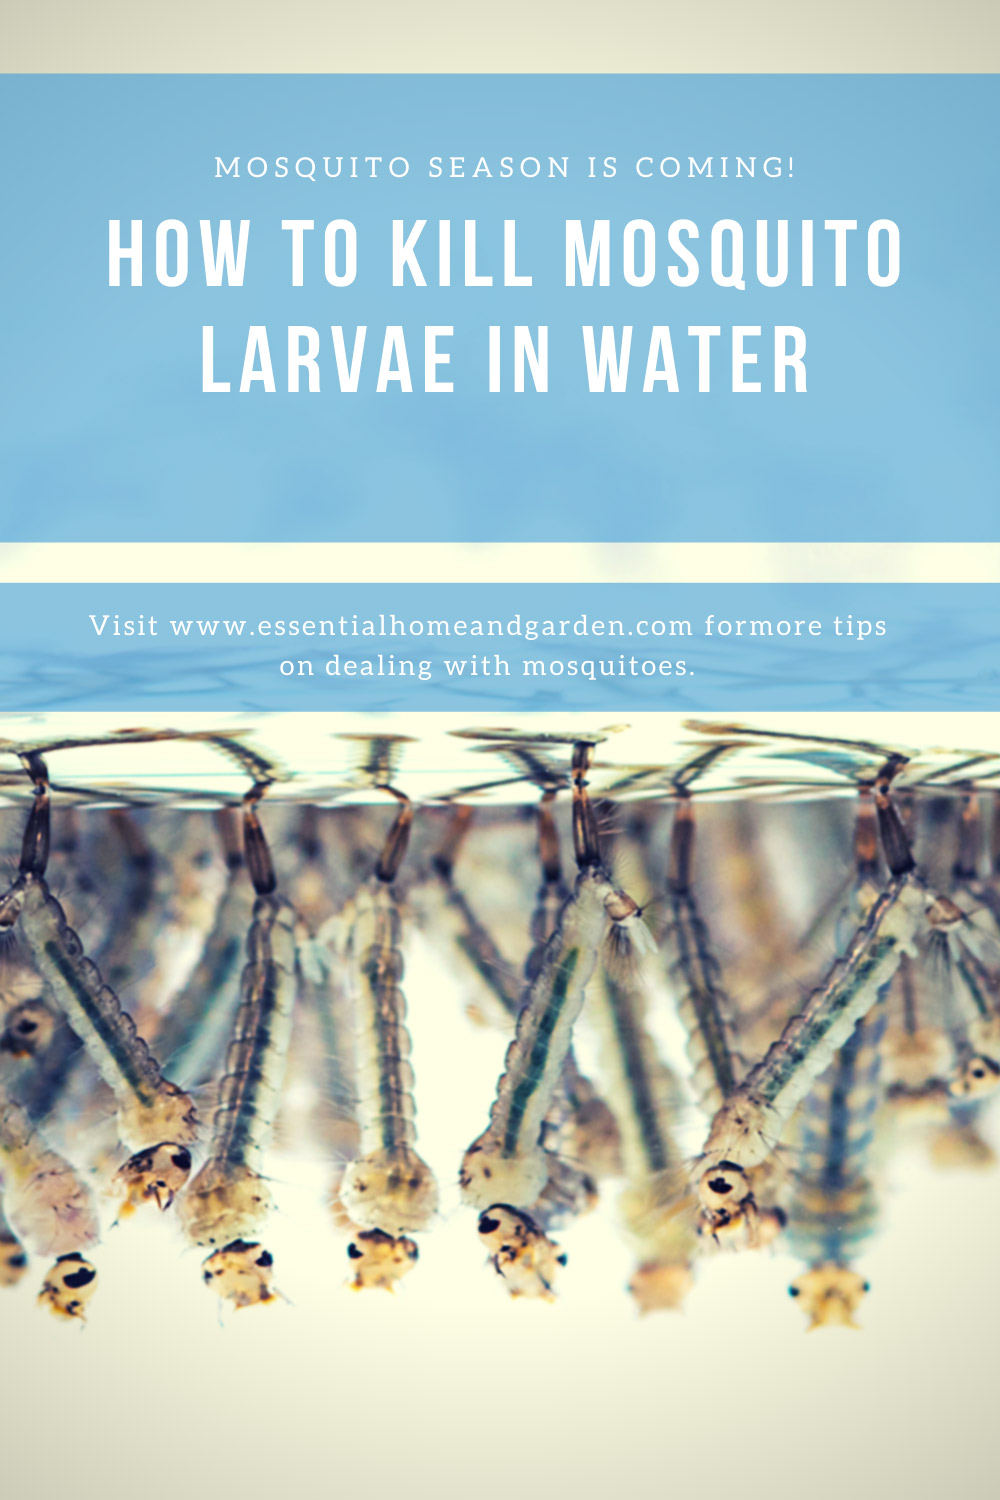 mosquito larvae in water pinterest image